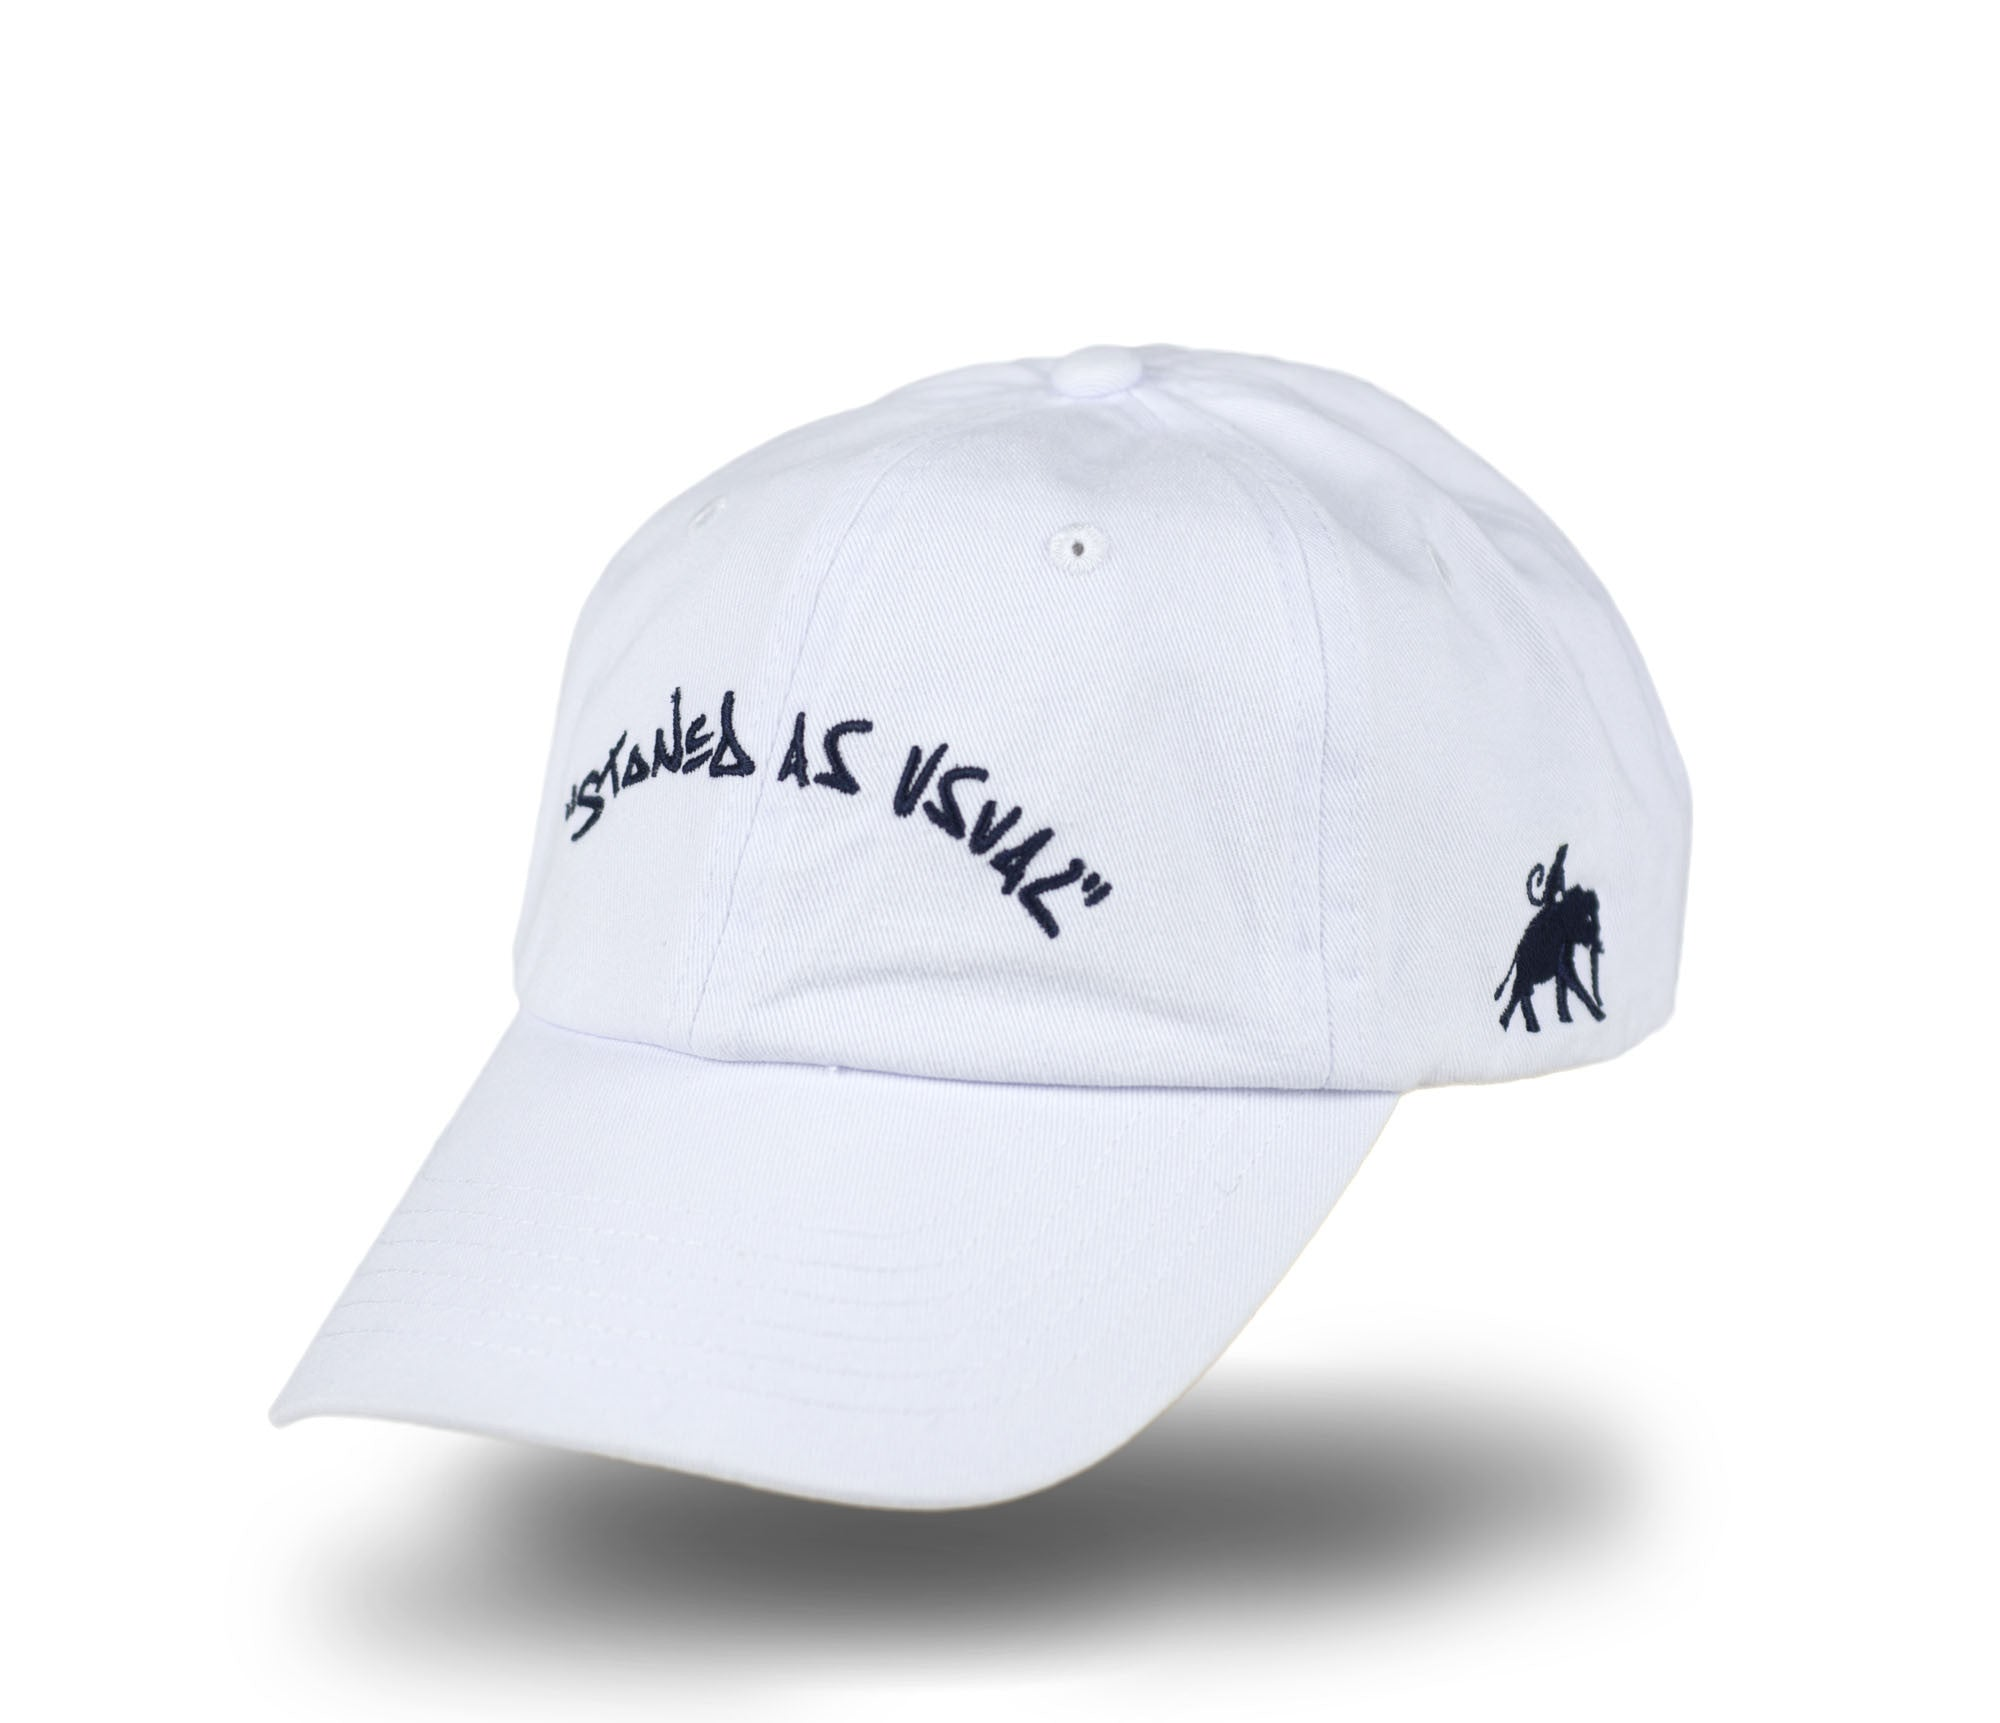 Stoned As Usual Dad Cap - White